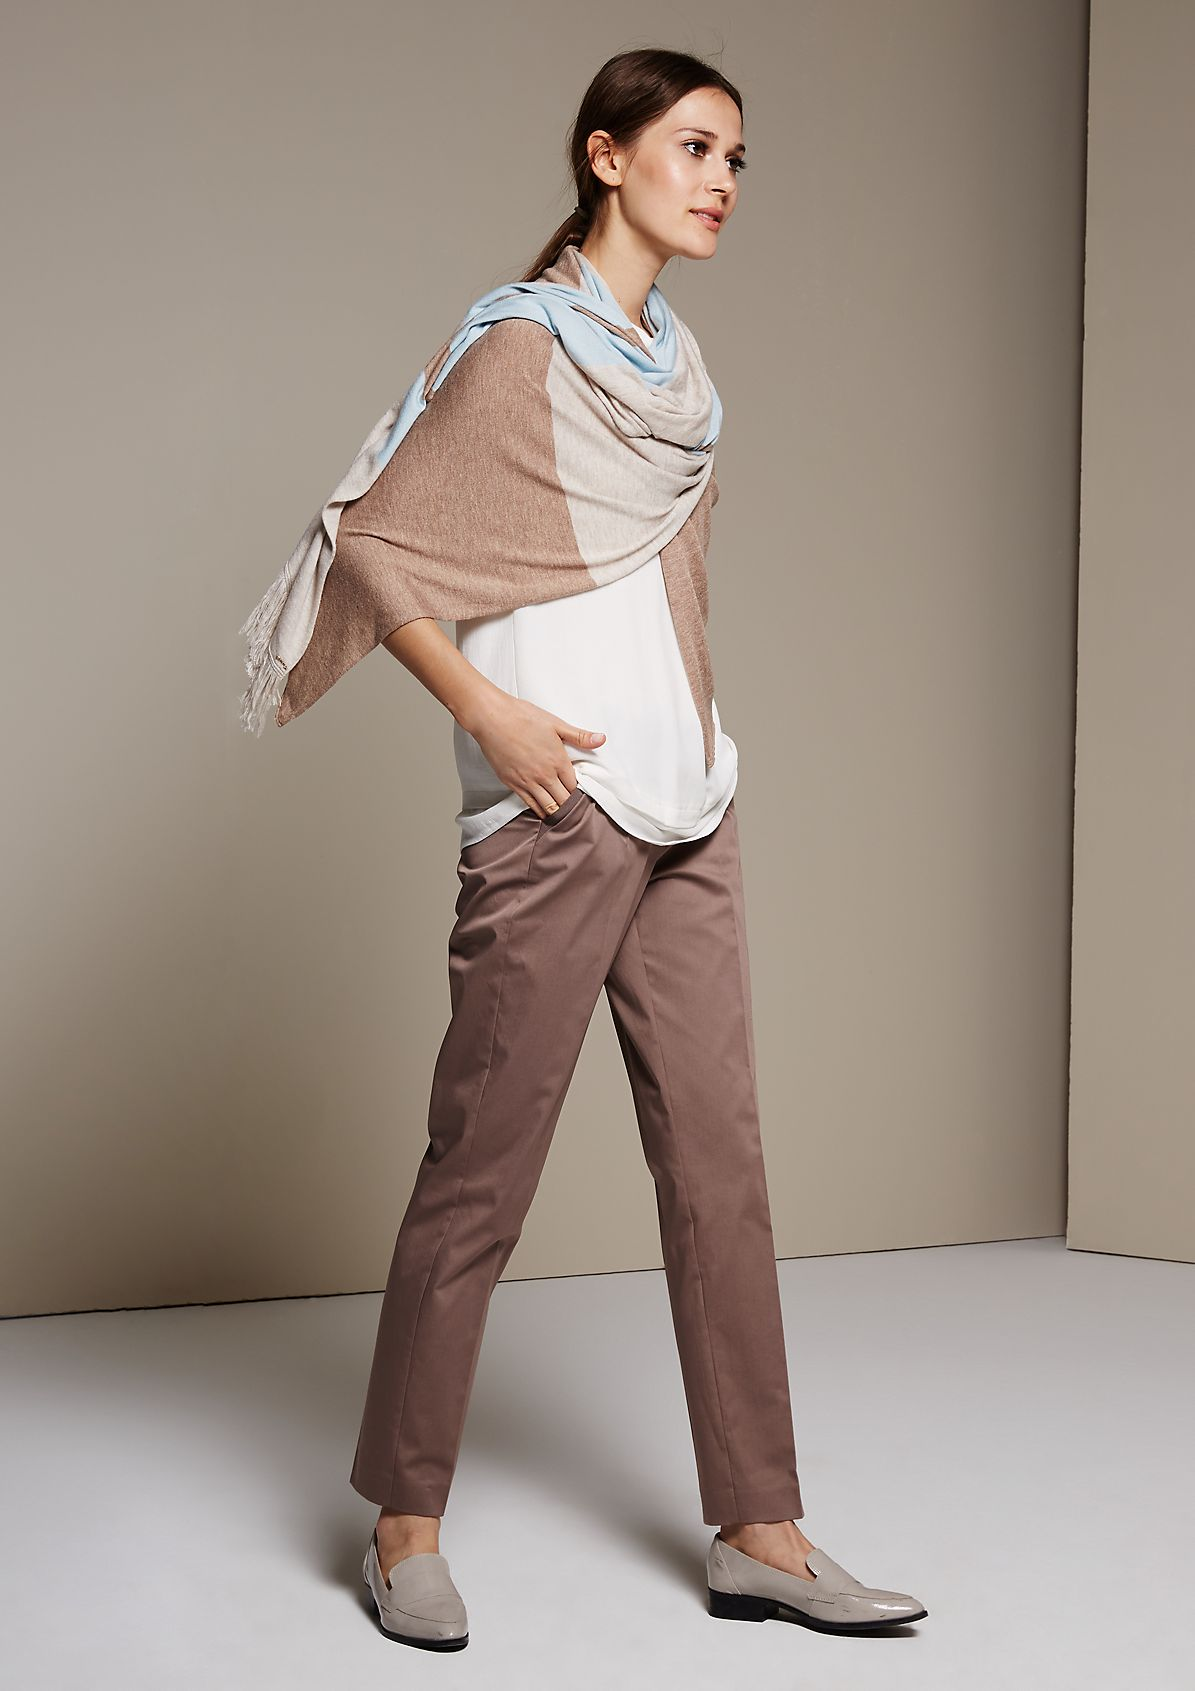 Satin trousers with a matte sheen and wonderful details from s.Oliver